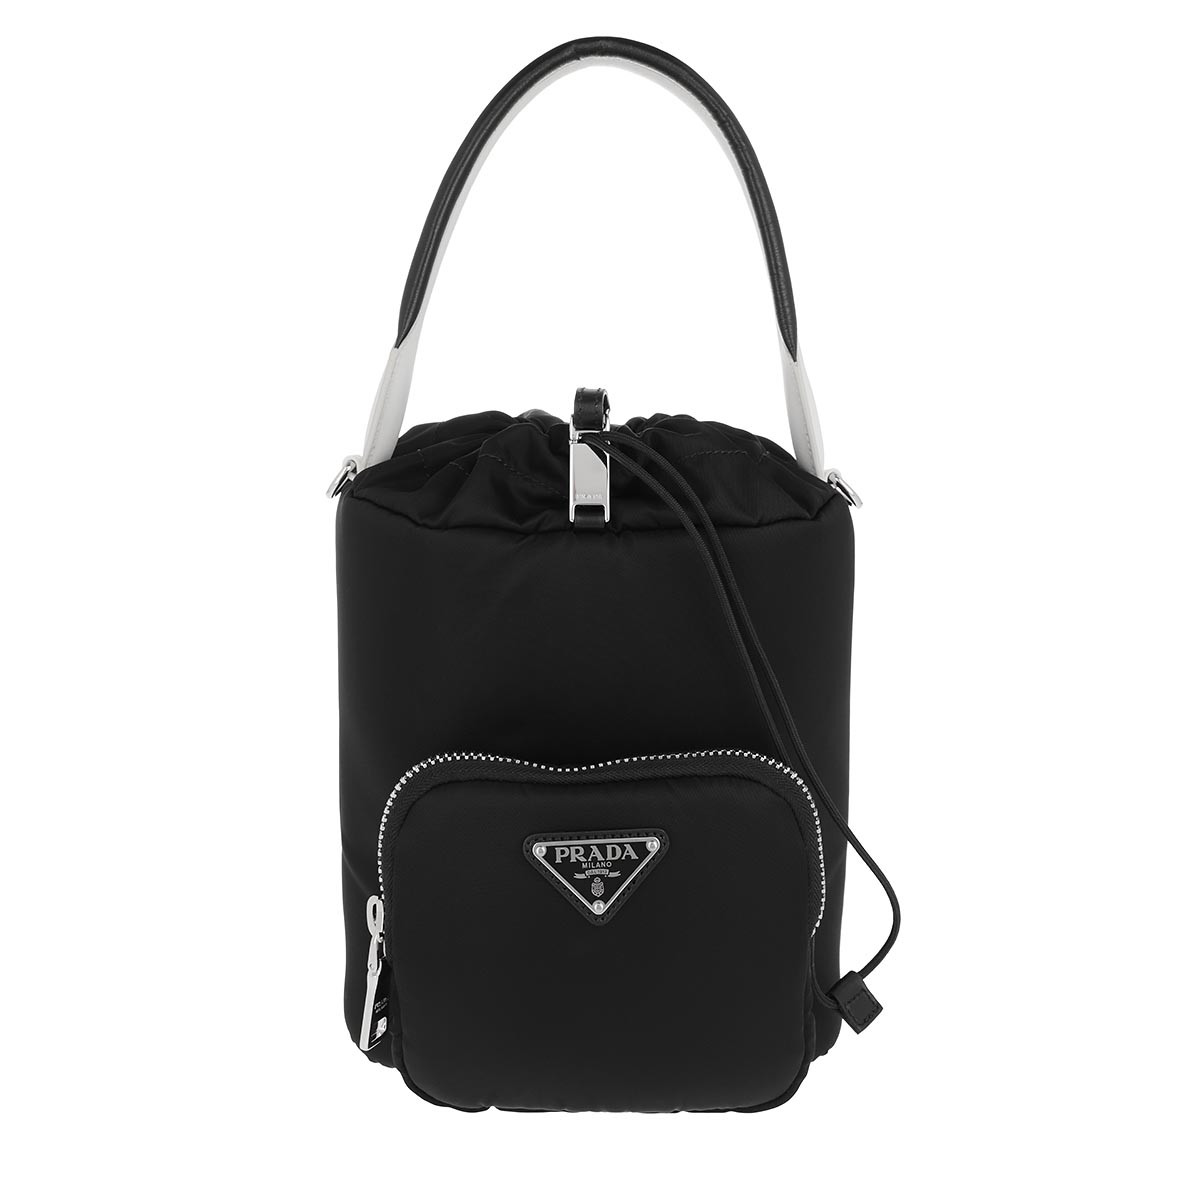 Prada Beuteltasche - Bucket Bag Nylon Black/Red - in schwarz - für Damen